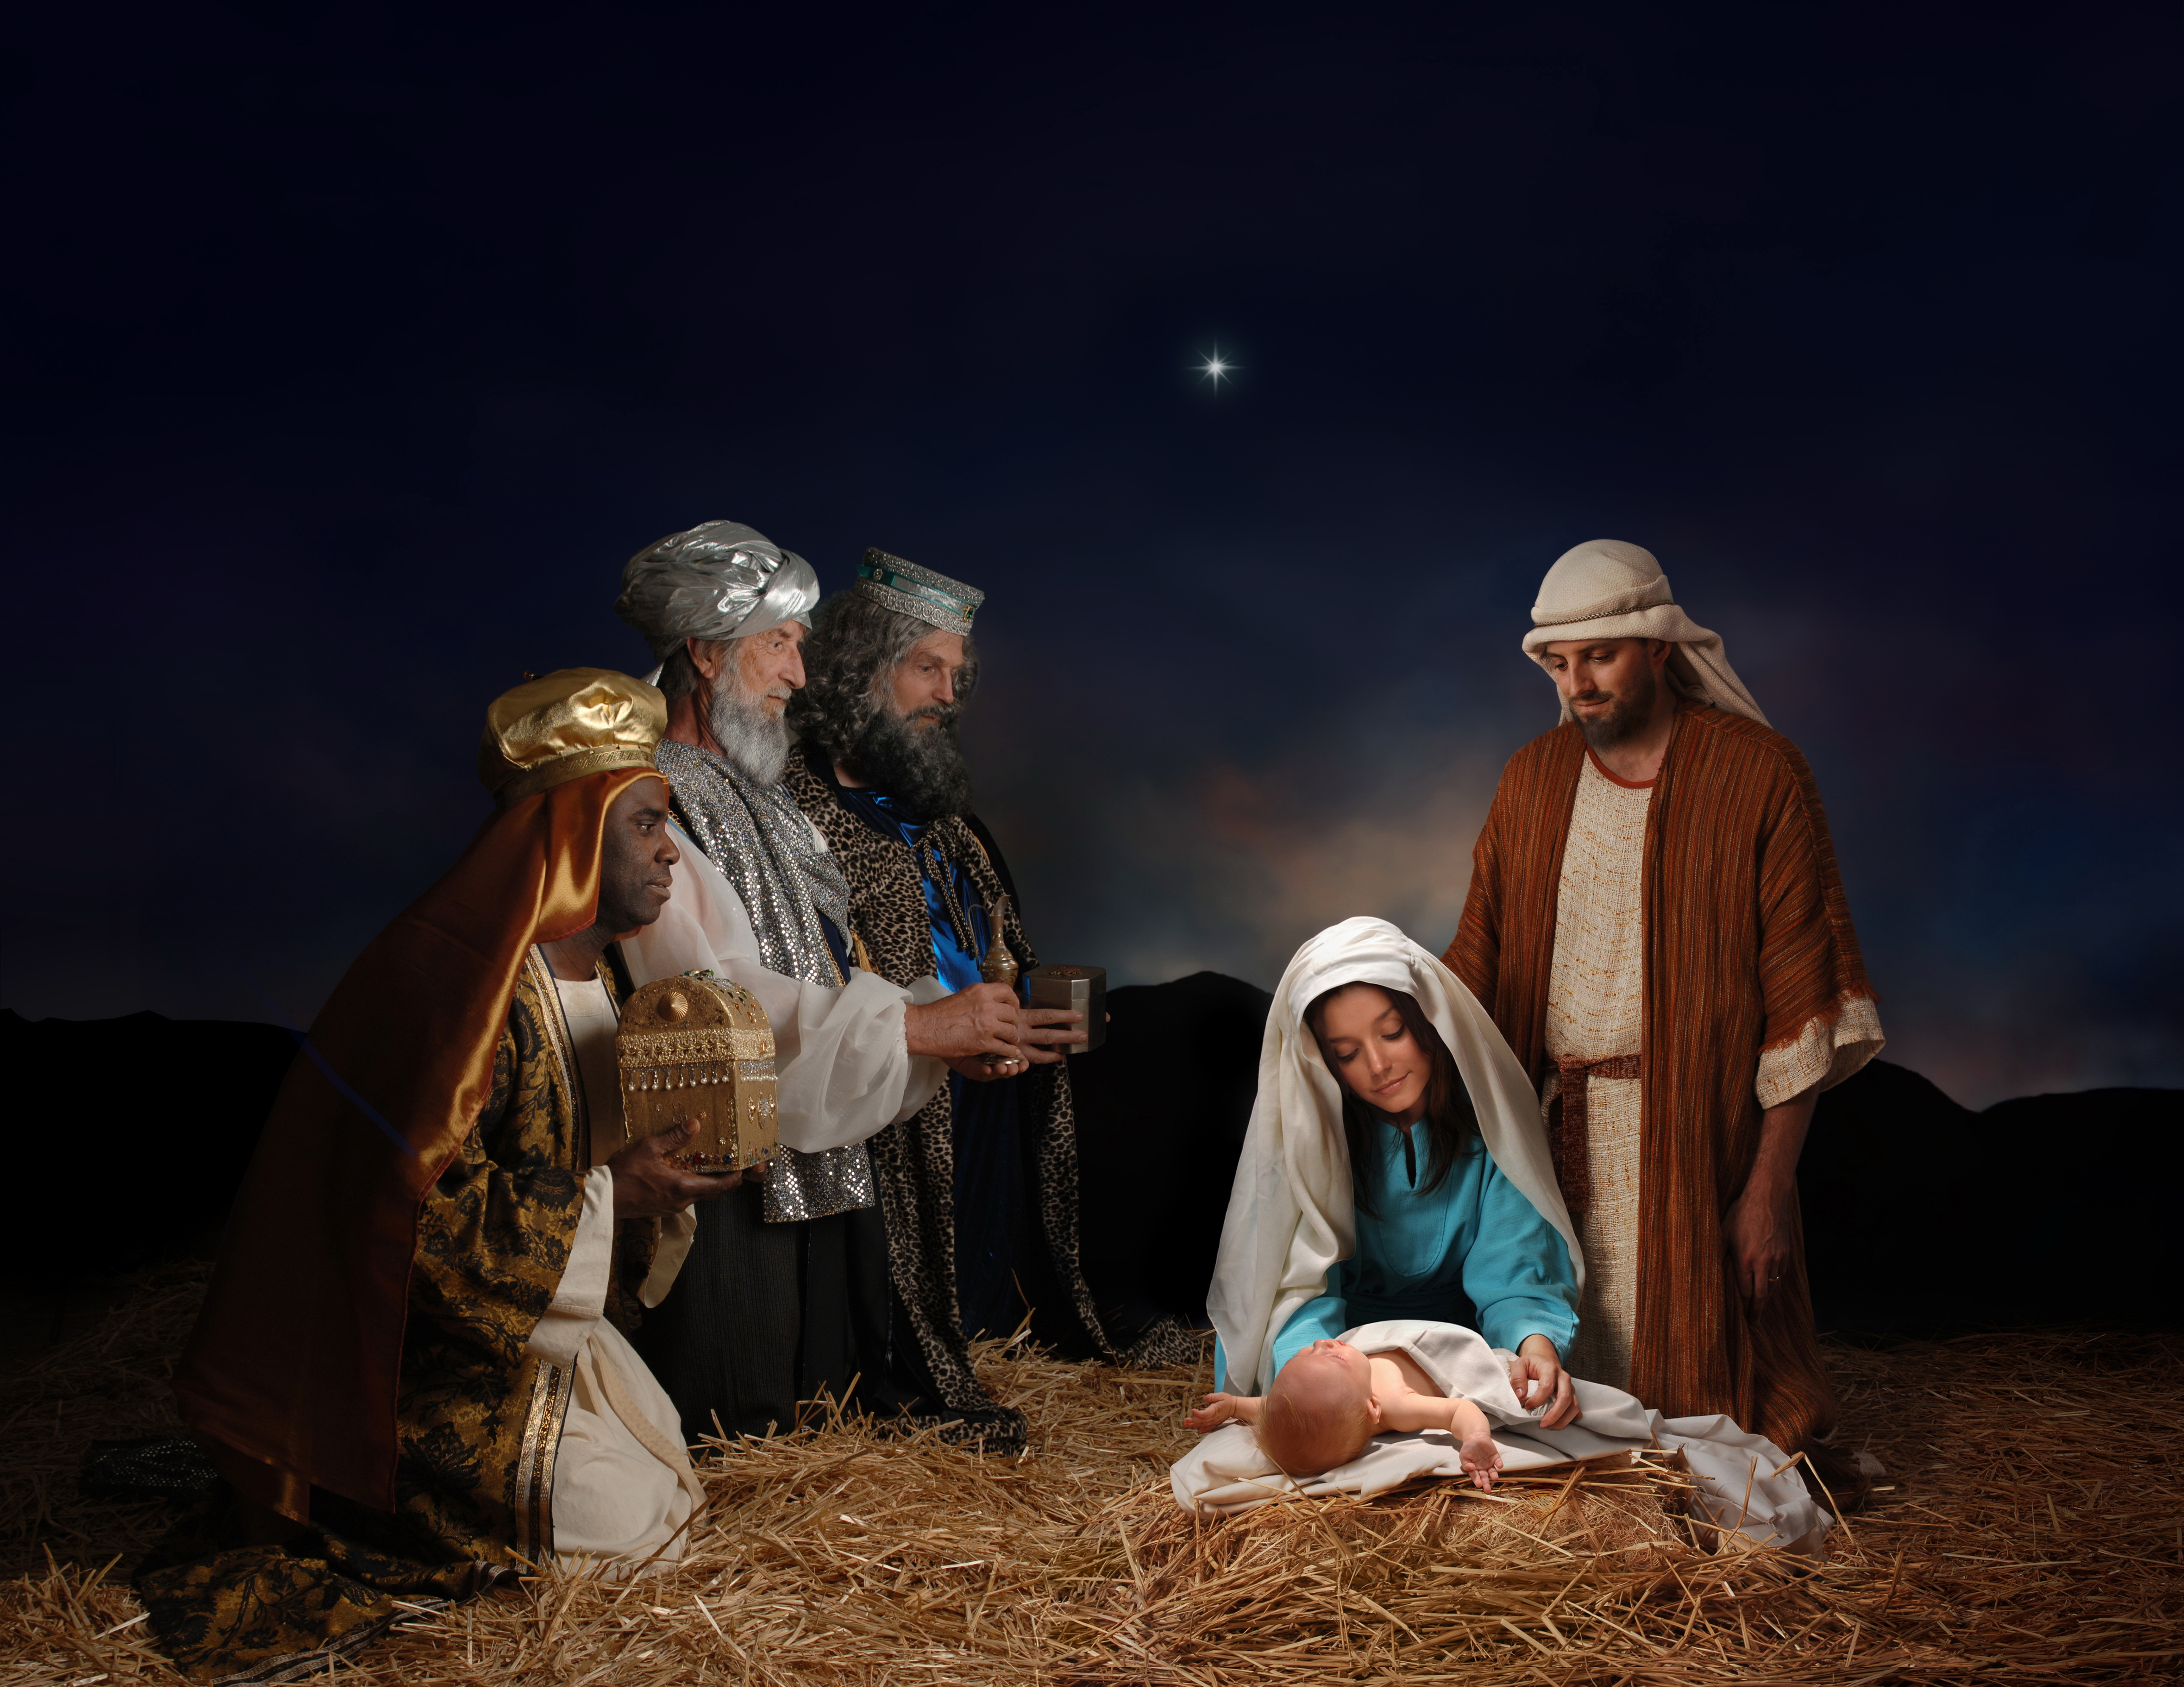 Download Birth Of Jesus Hd Wallpaper For Laptop Mobile Christmas